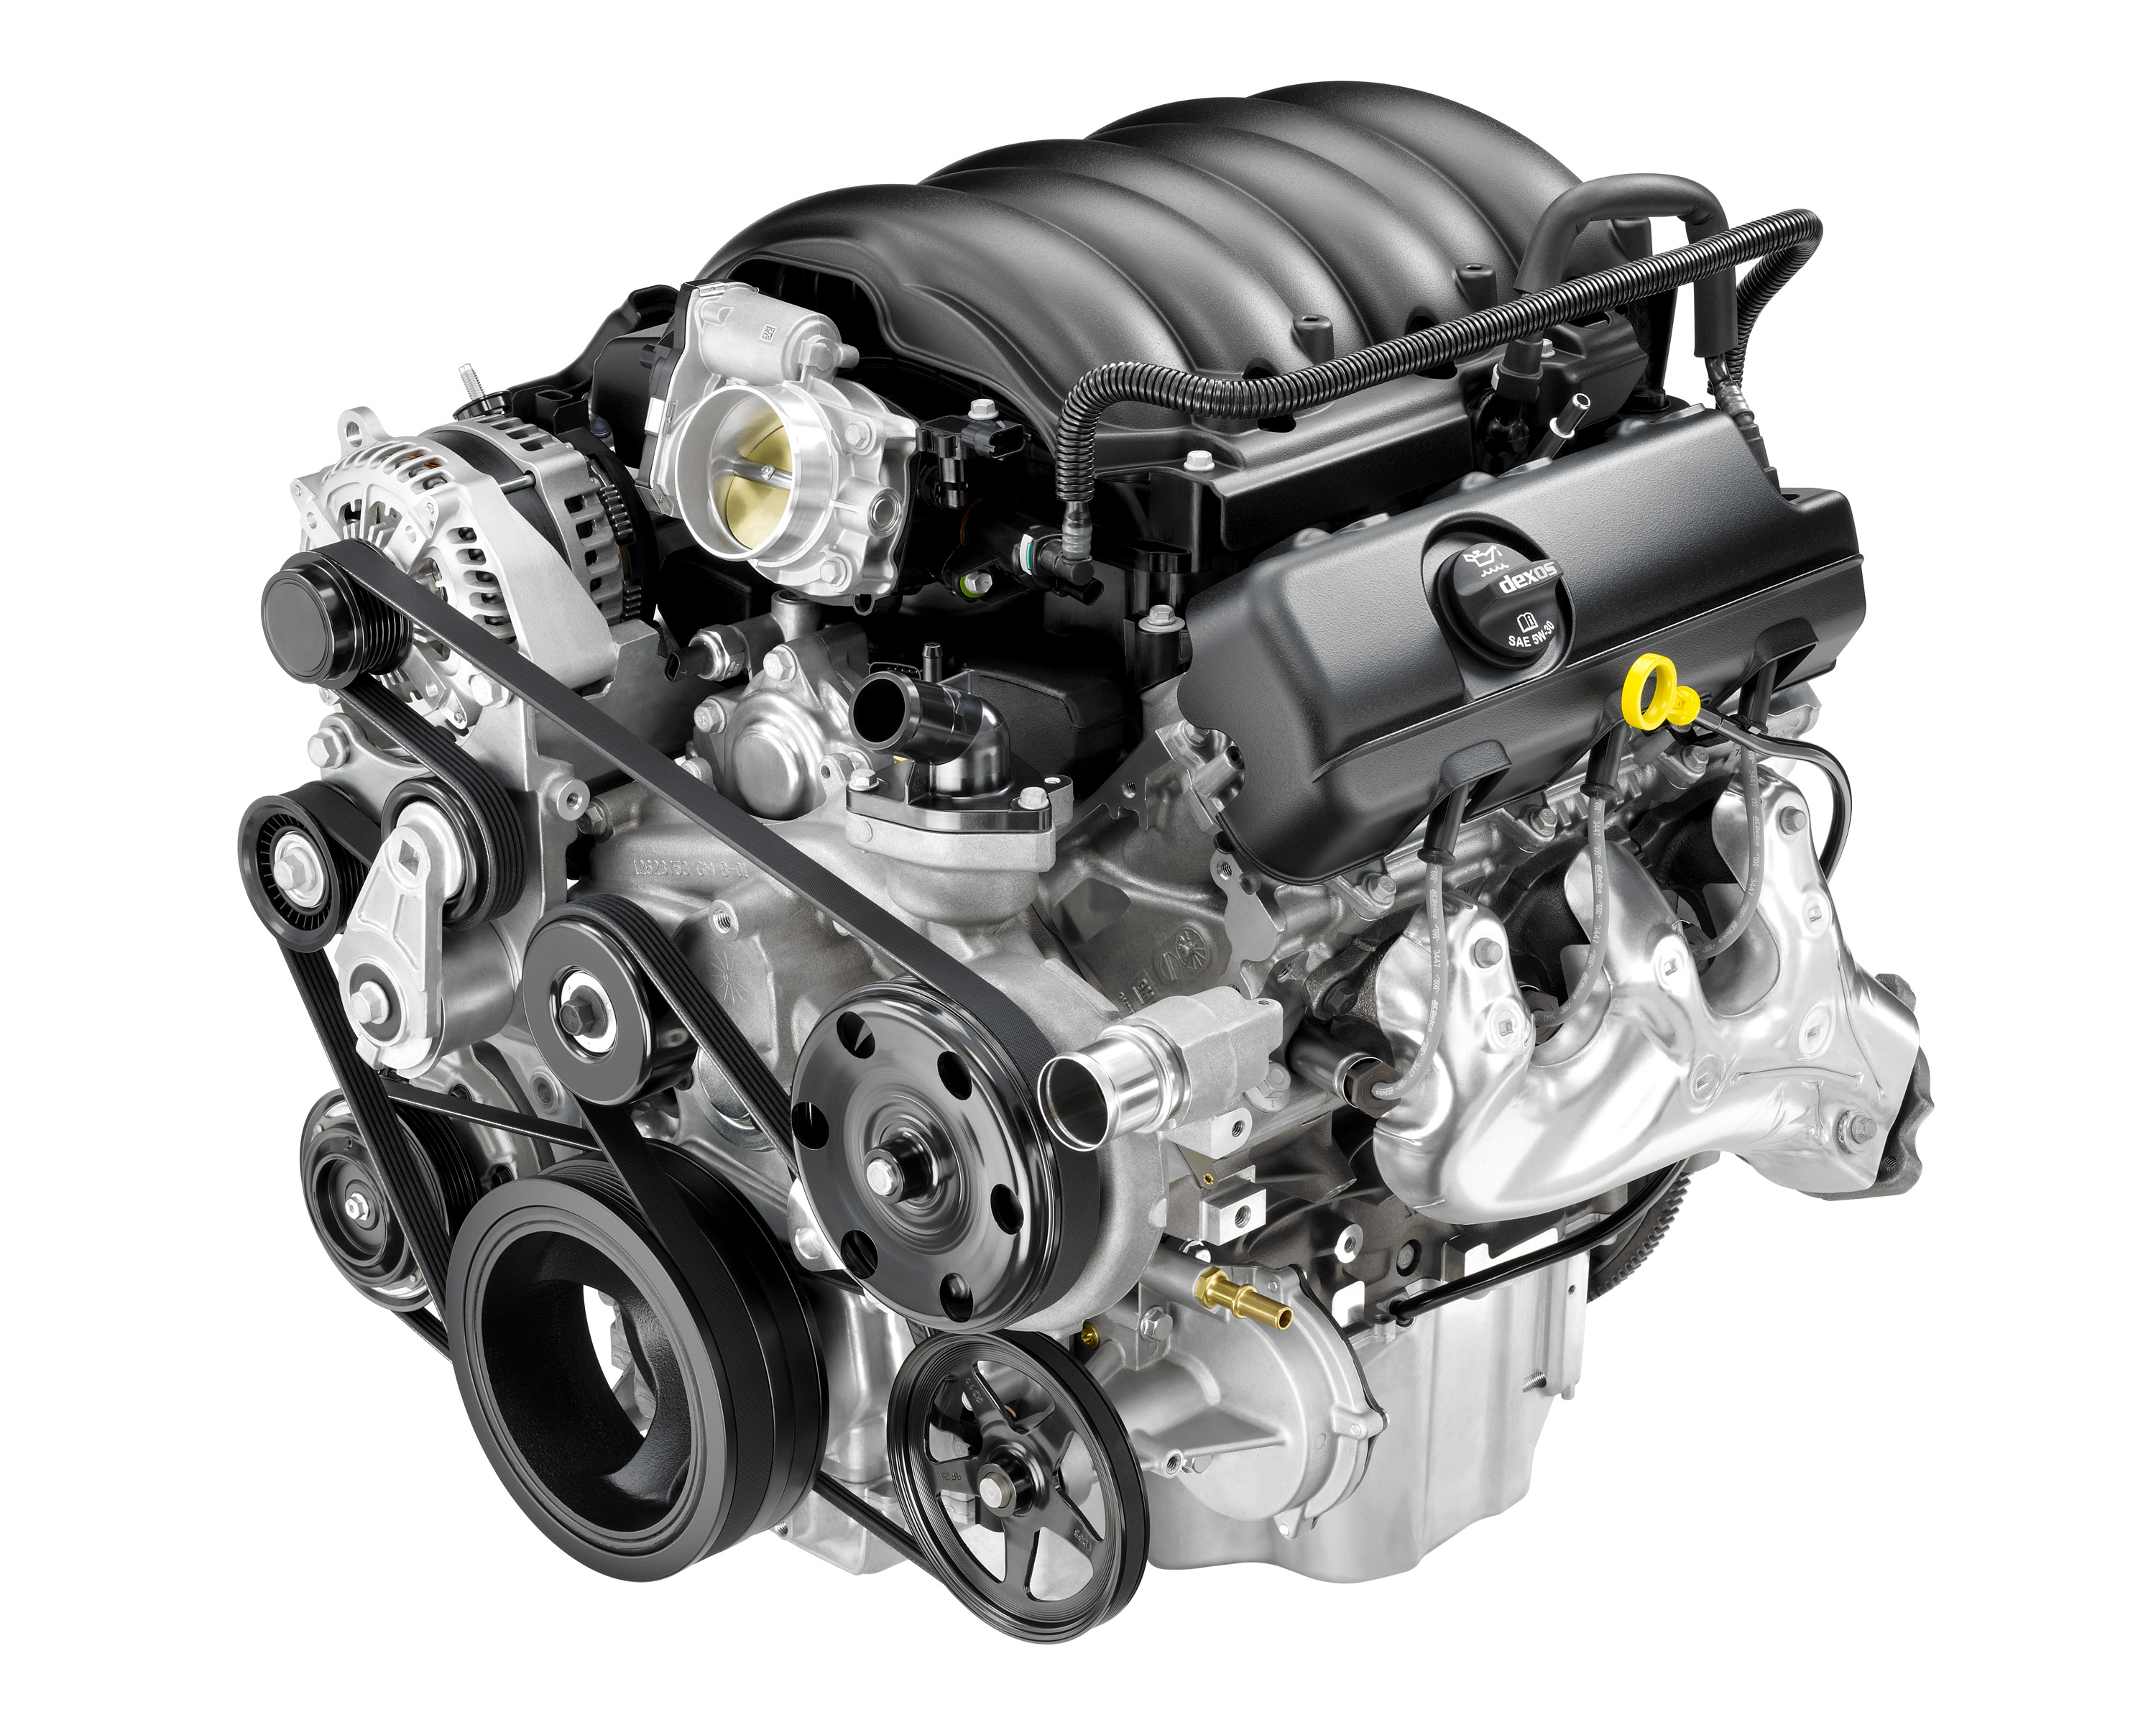 engine build for Chevrolet Silverado. engine on white background